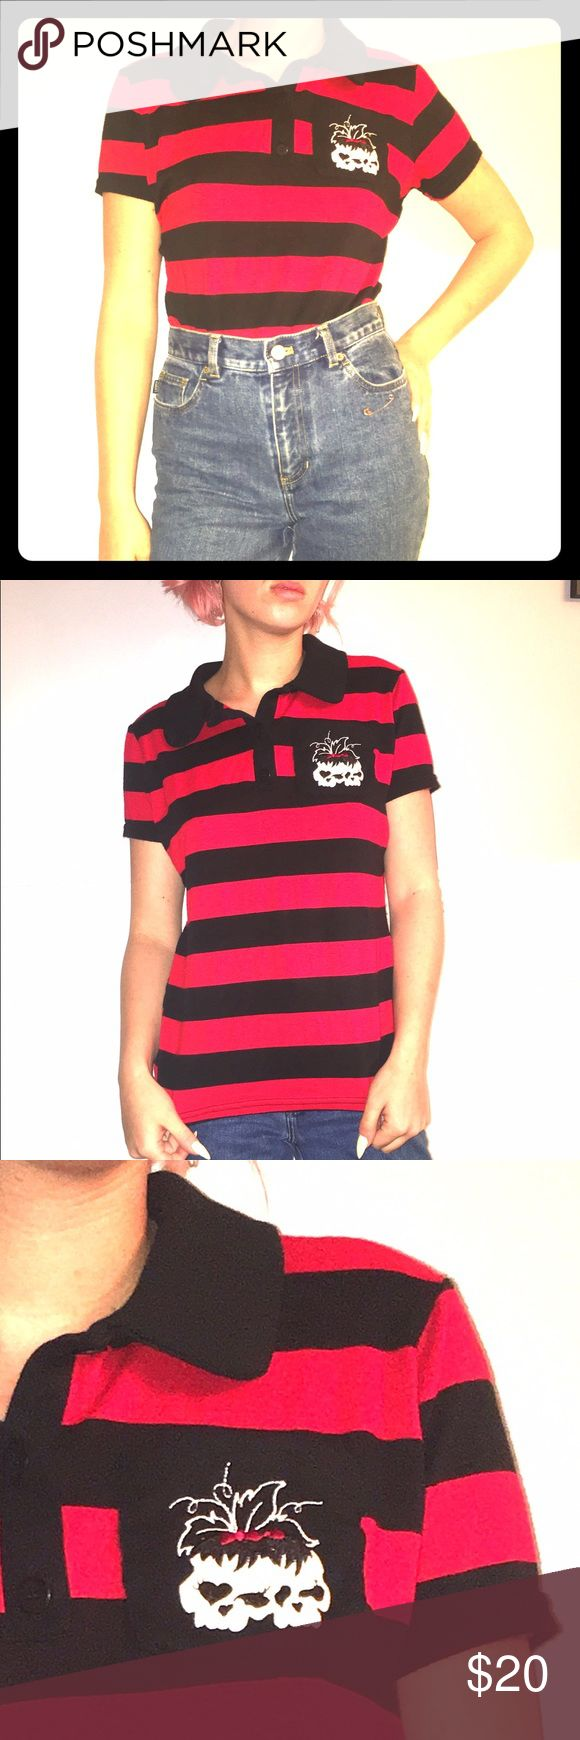 Women's stripe polo shirt with pocket detail Very stretchy stripe polo with pocket skull detail. Worn once. Great condition. Smoke free home! Tops Button Down Shirts